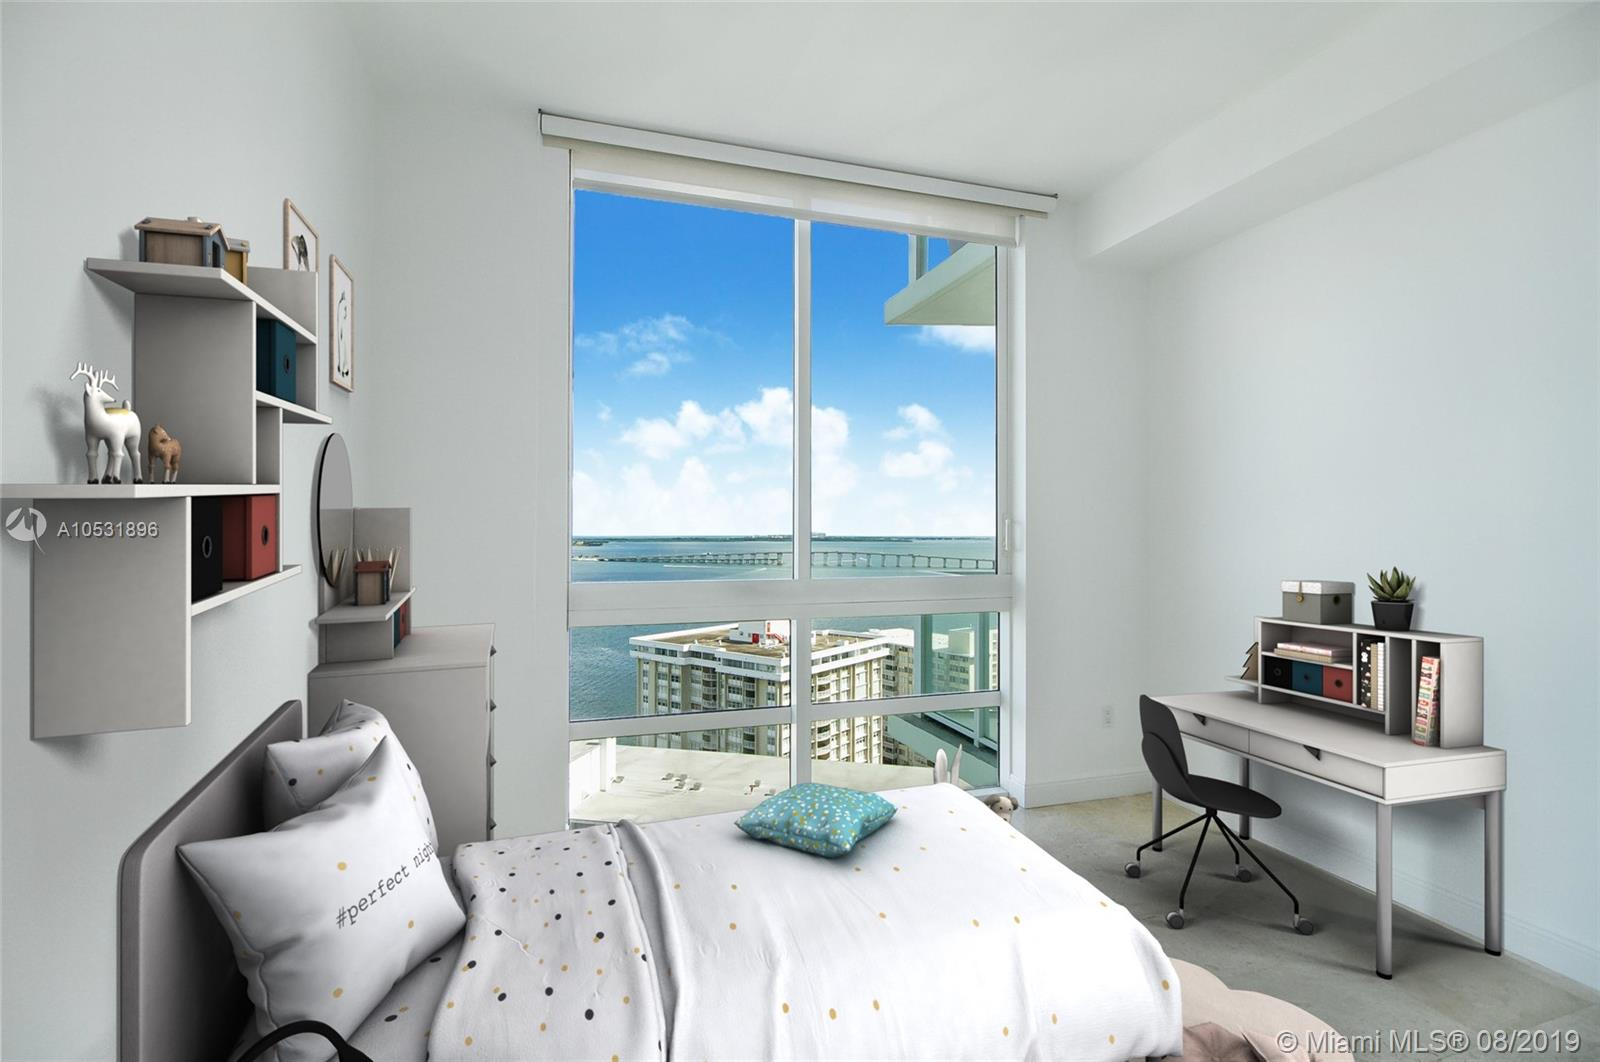 218 SE 14th St, Miami, Fl 33131, Emerald at Brickell #2305, Brickell, Miami A10531896 image #10